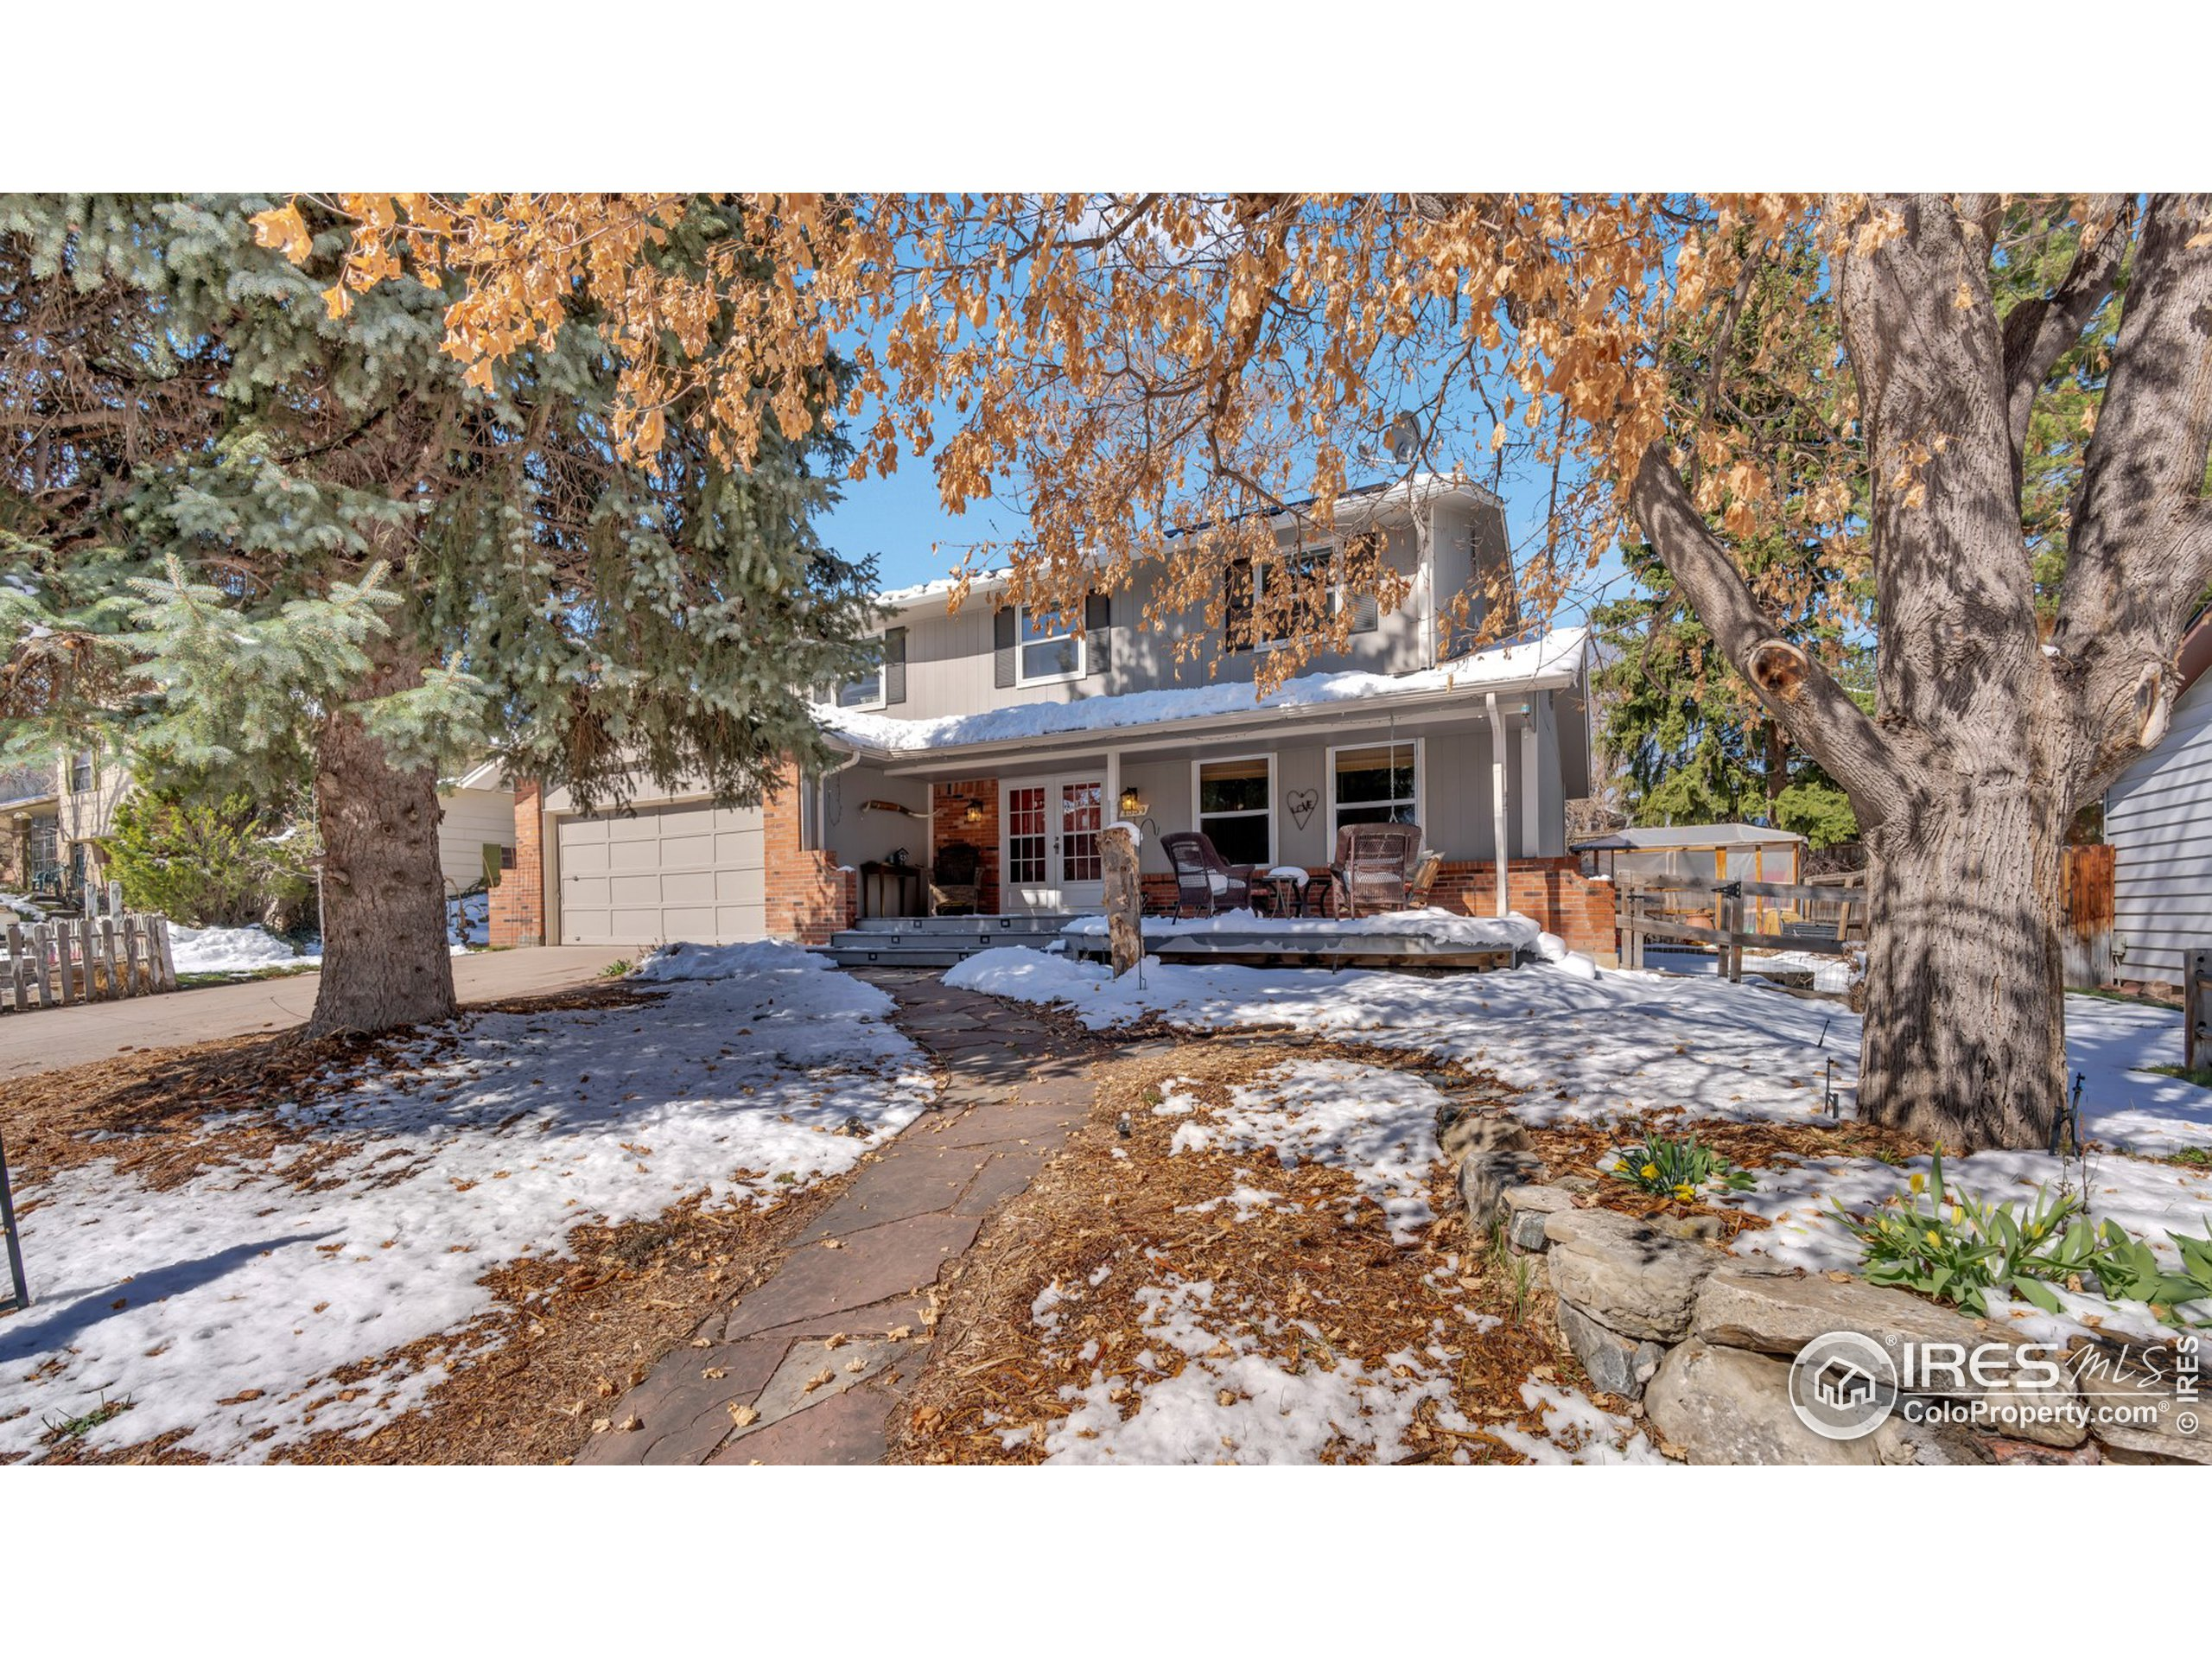 """Beautifully updated home centrally located between downtown Denver and the Mountains. Just a short 15 minutes to Union Station and Coors Field and 15 minutes to Red Rocks. Walk to 4 parks and brand new Kendrick Lake elementary school. Features mature trees in front yard, large front deck and covered porch, covered backyard patio, natural light in all rooms, fenced backyard, raised bed gardens, two backyard sheds and new flagstone patio and fire pit. Energy features include solar PV system (leased), NEST thermostat, high-efficiency Amana furnace, Wi-Fi controlled B-HYVE sprinkler system and evaporative cooler. Large master bedroom with built in designer closet and oversized shower. Remodeled upstairs bathrooms, and remodeled cook's kitchen with butcher block countertops, designer cabinets with 42"""" uppers, gas range and stainless appliances. Bamboo flooring throughout main level and new upstairs carpet. This home is the turnkey home you have been looking for, just move right in!"""